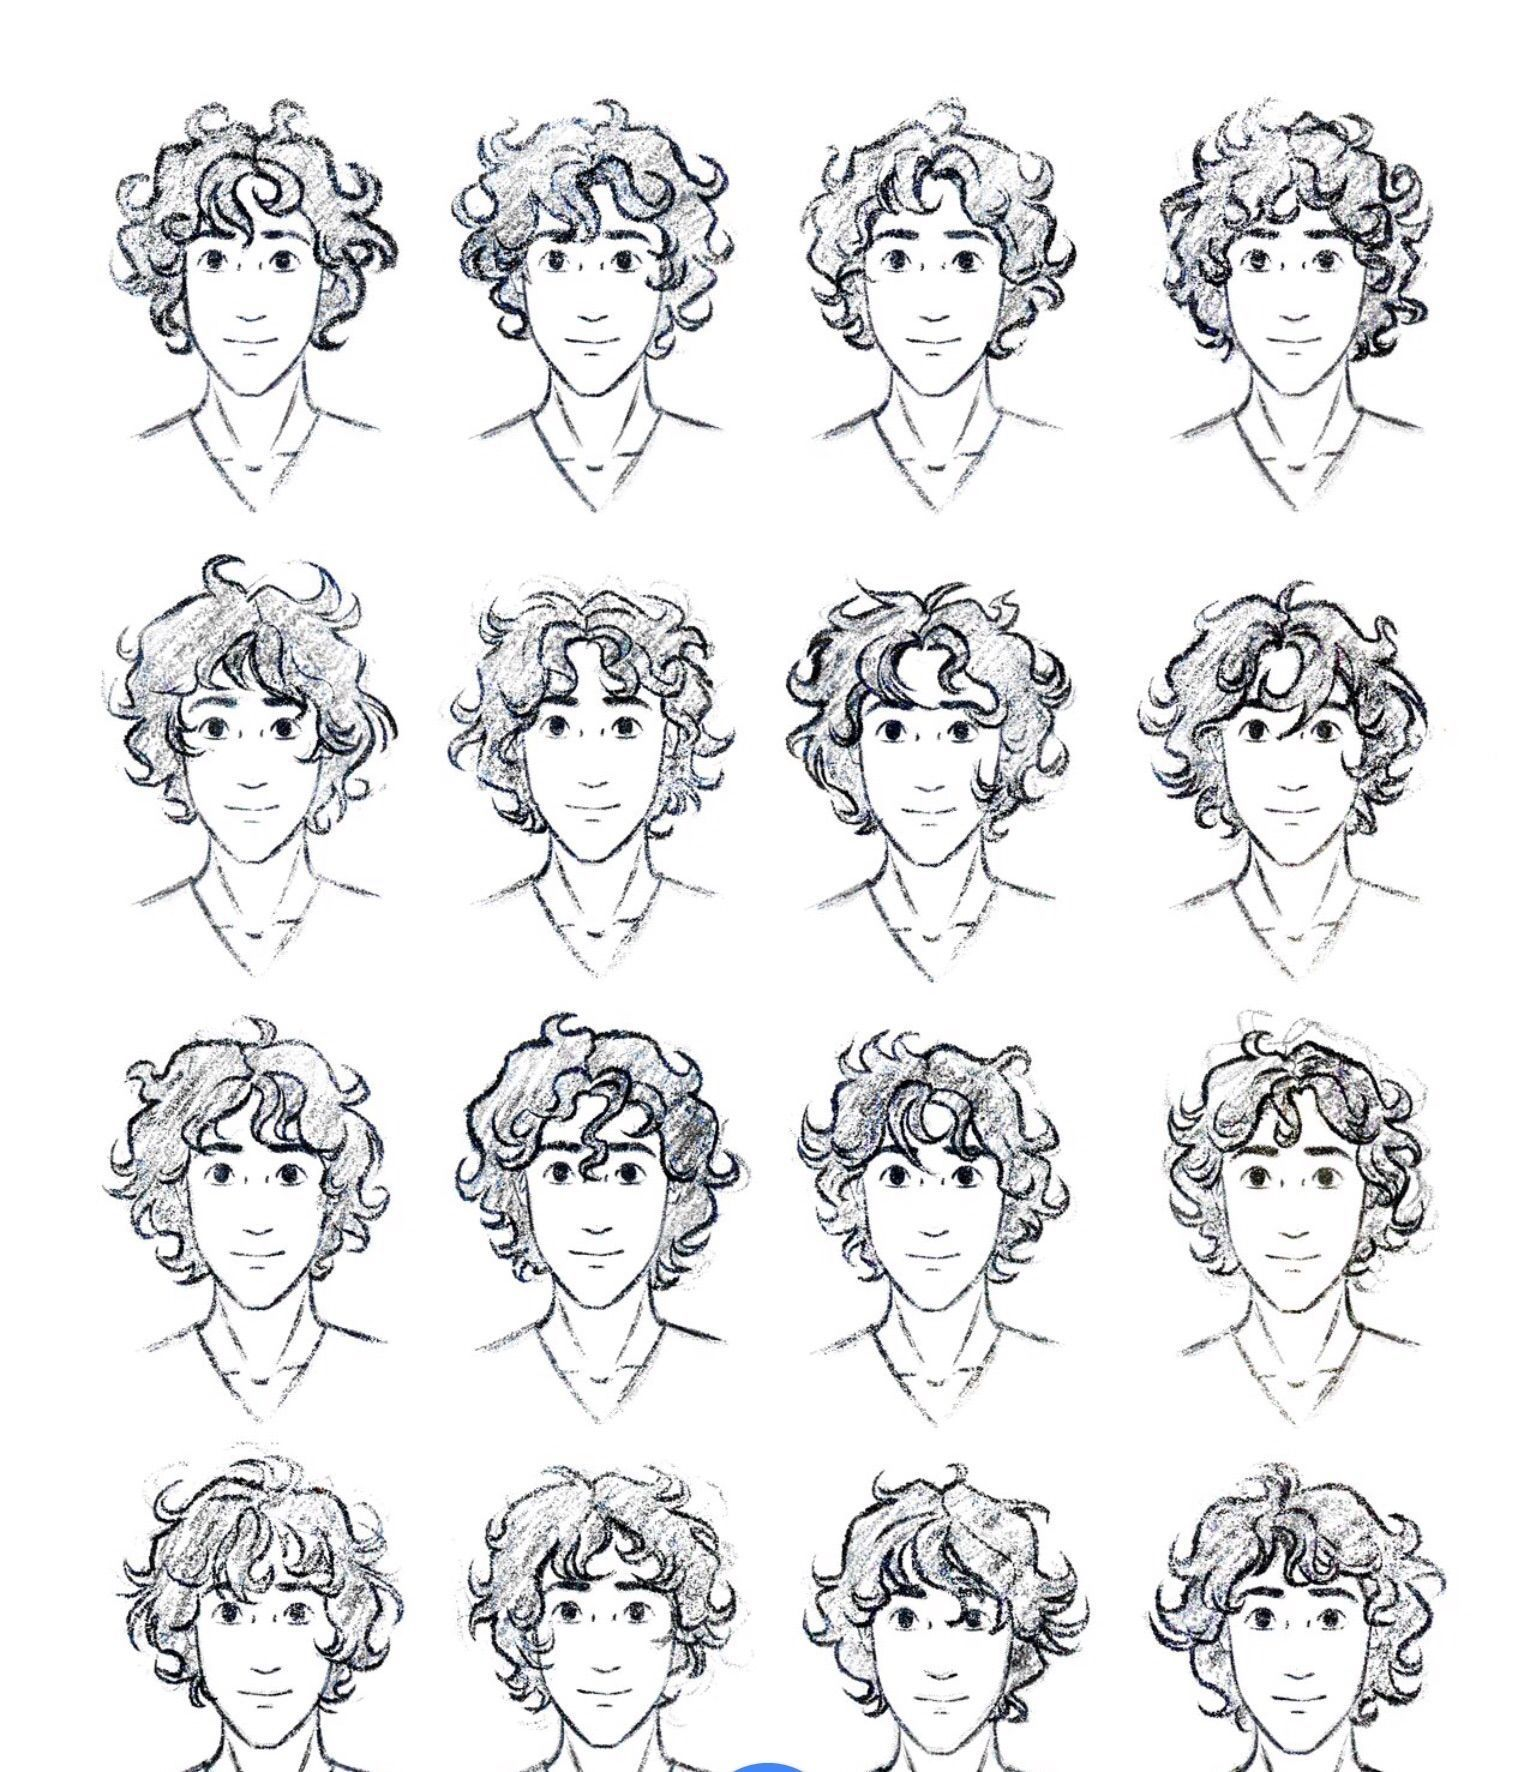 These Are Some Examples Of Guys With Curly Hair If You Want To Learn How To Draw Some Curly Hair Drawing Boy Hair Drawing Hair Sketch Draw an outline of the head. curly hair drawing